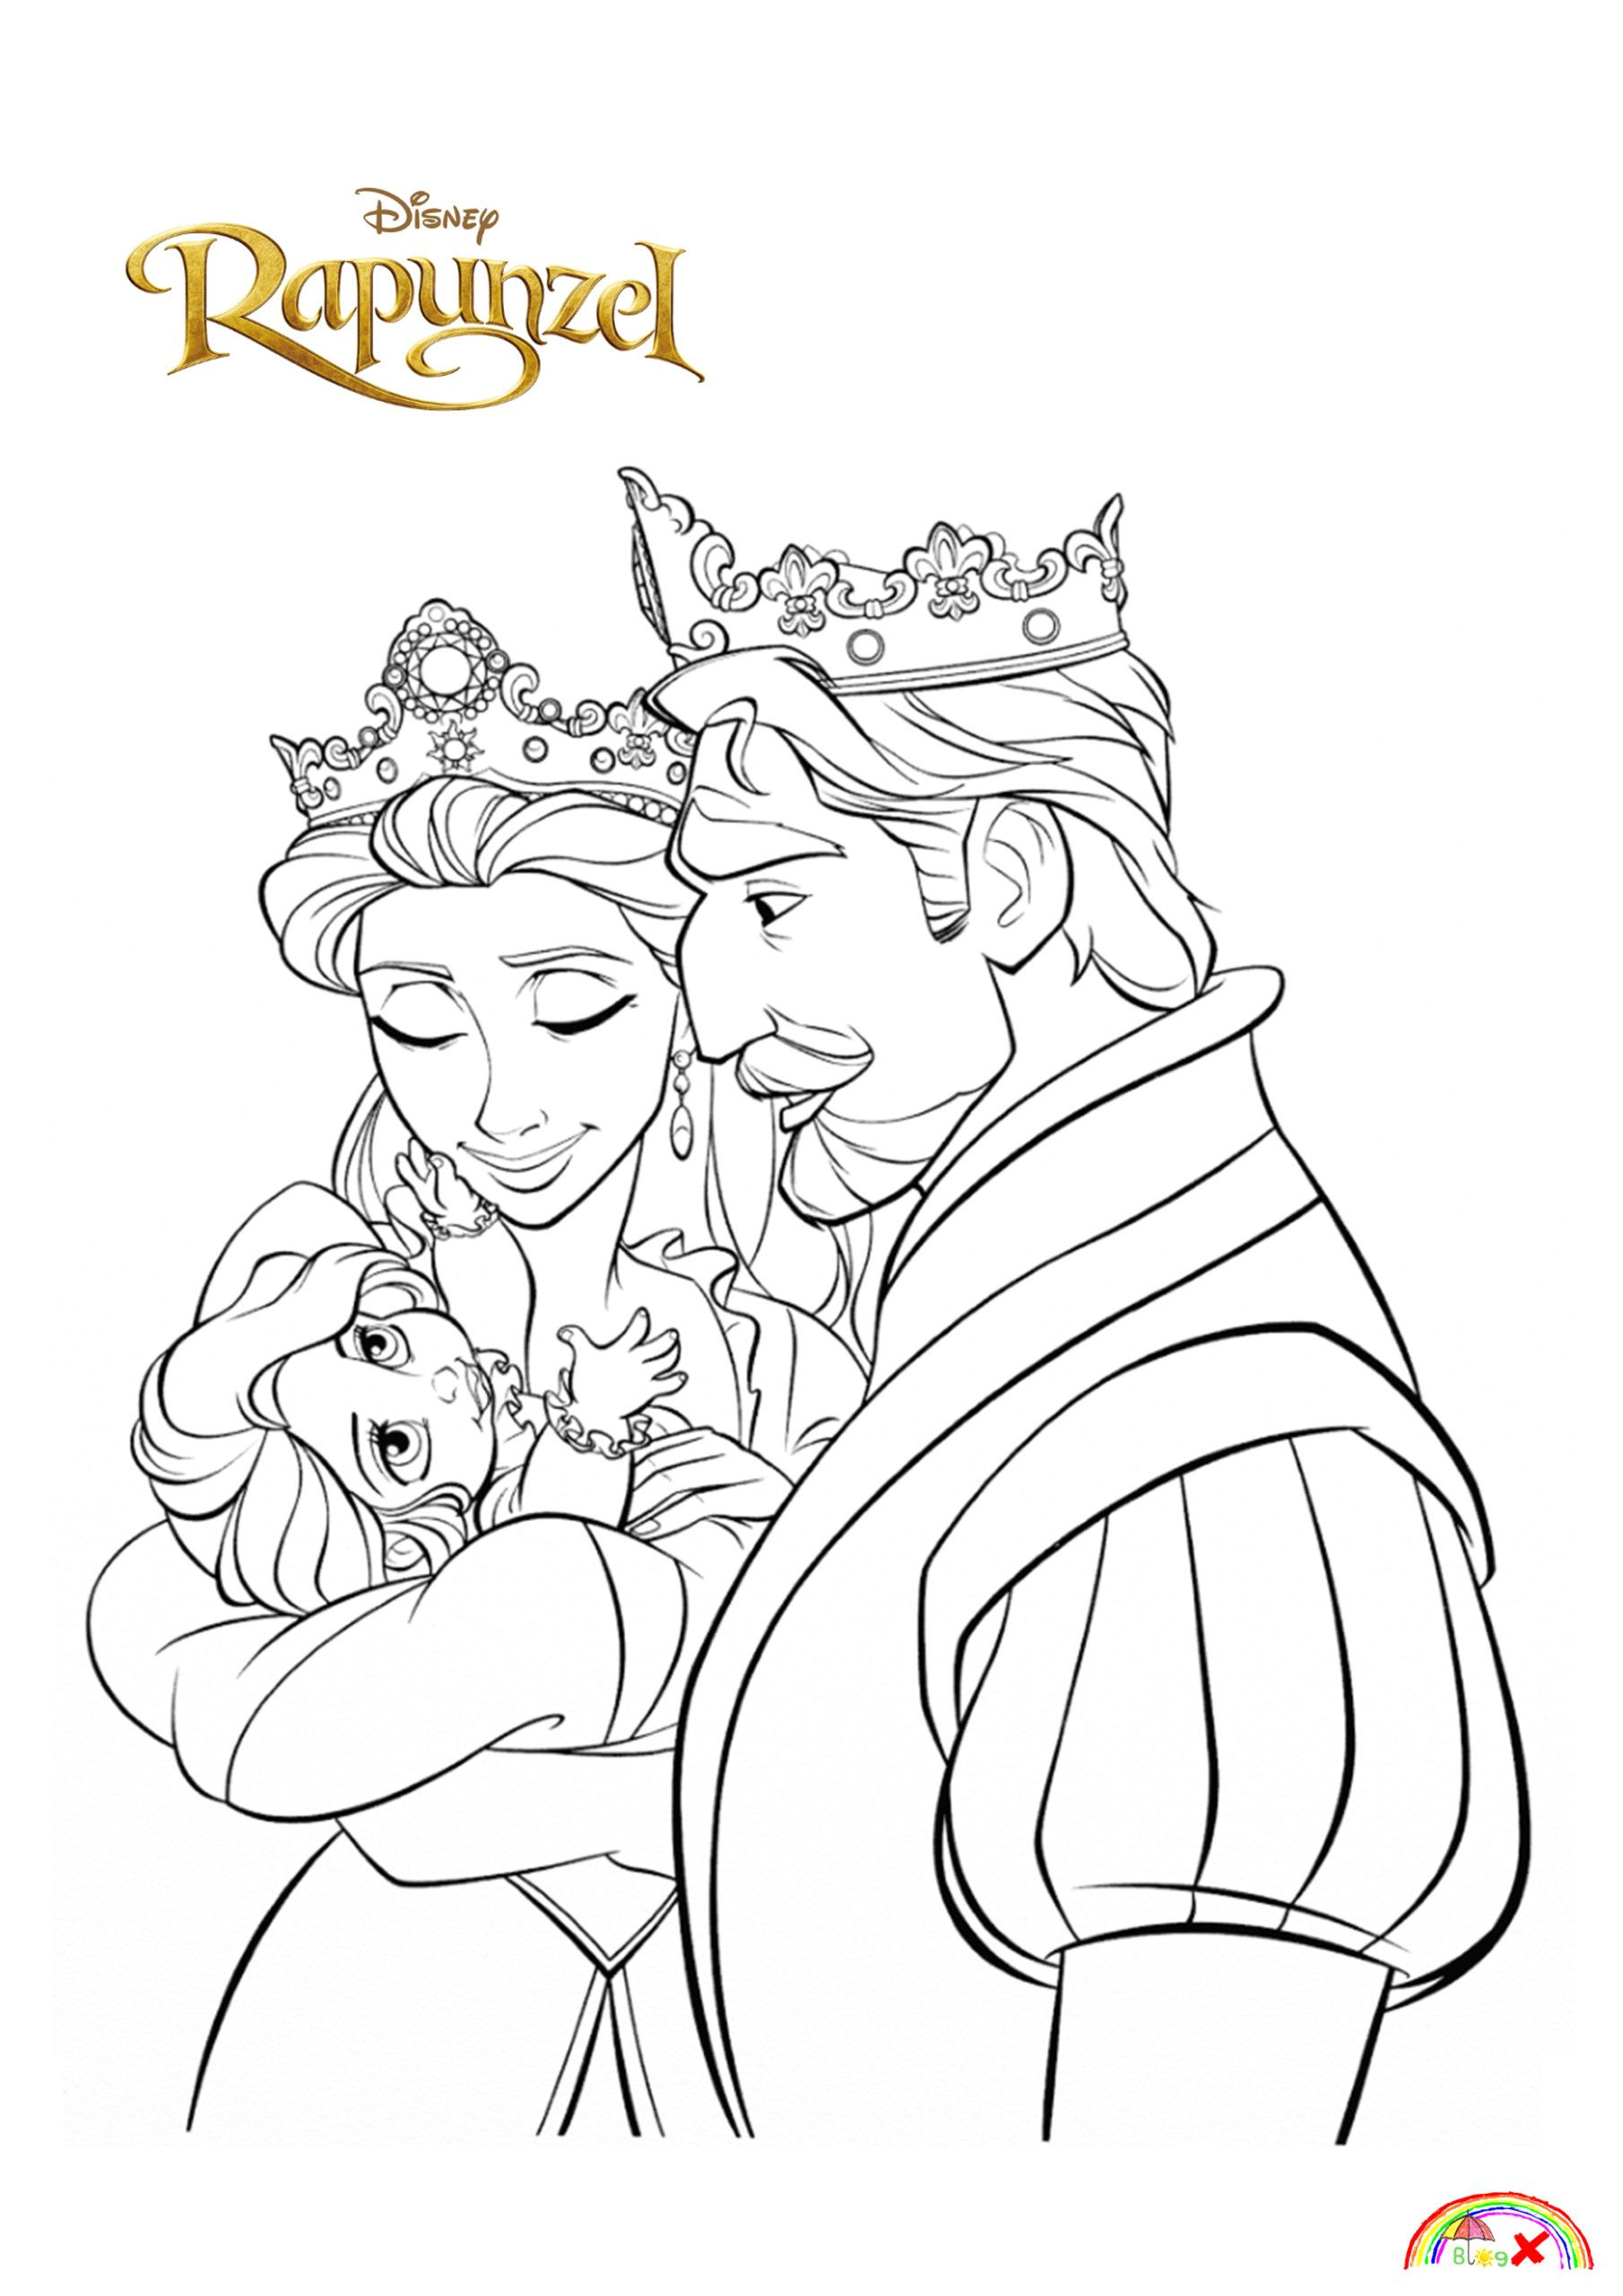 Baby Rapunzel with her parent King Frederic and Queen Arianna